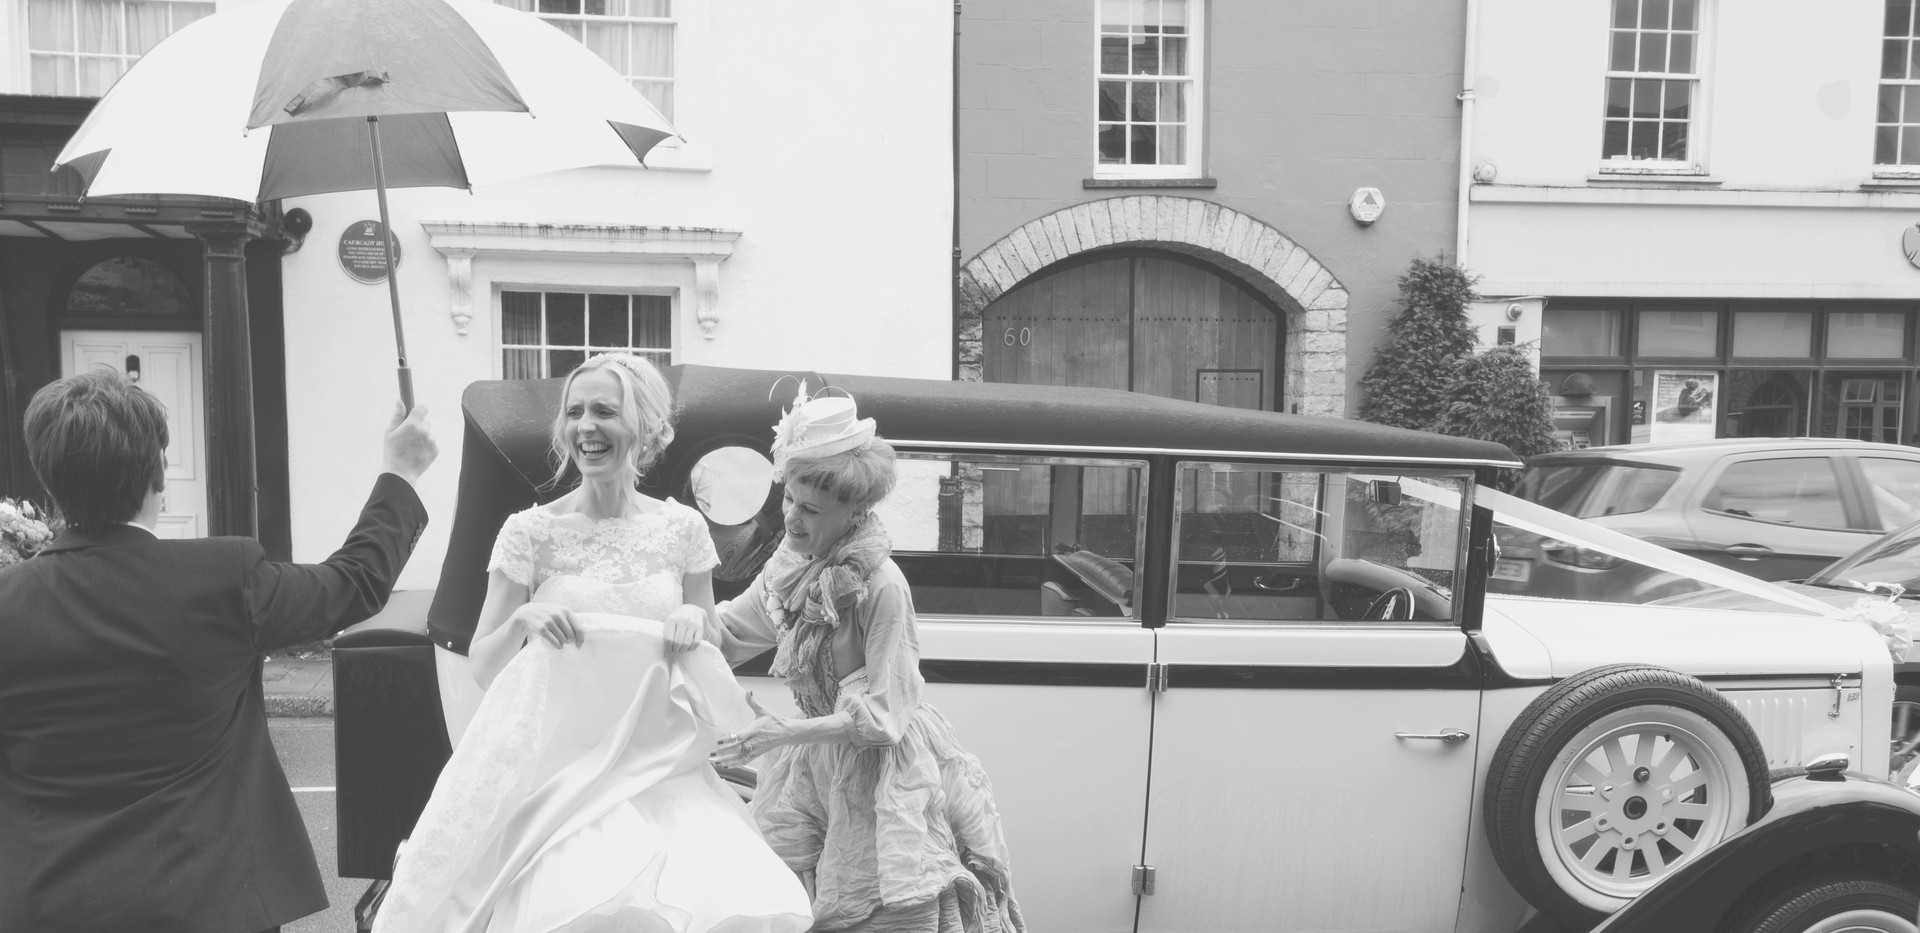 Arrival of the bride